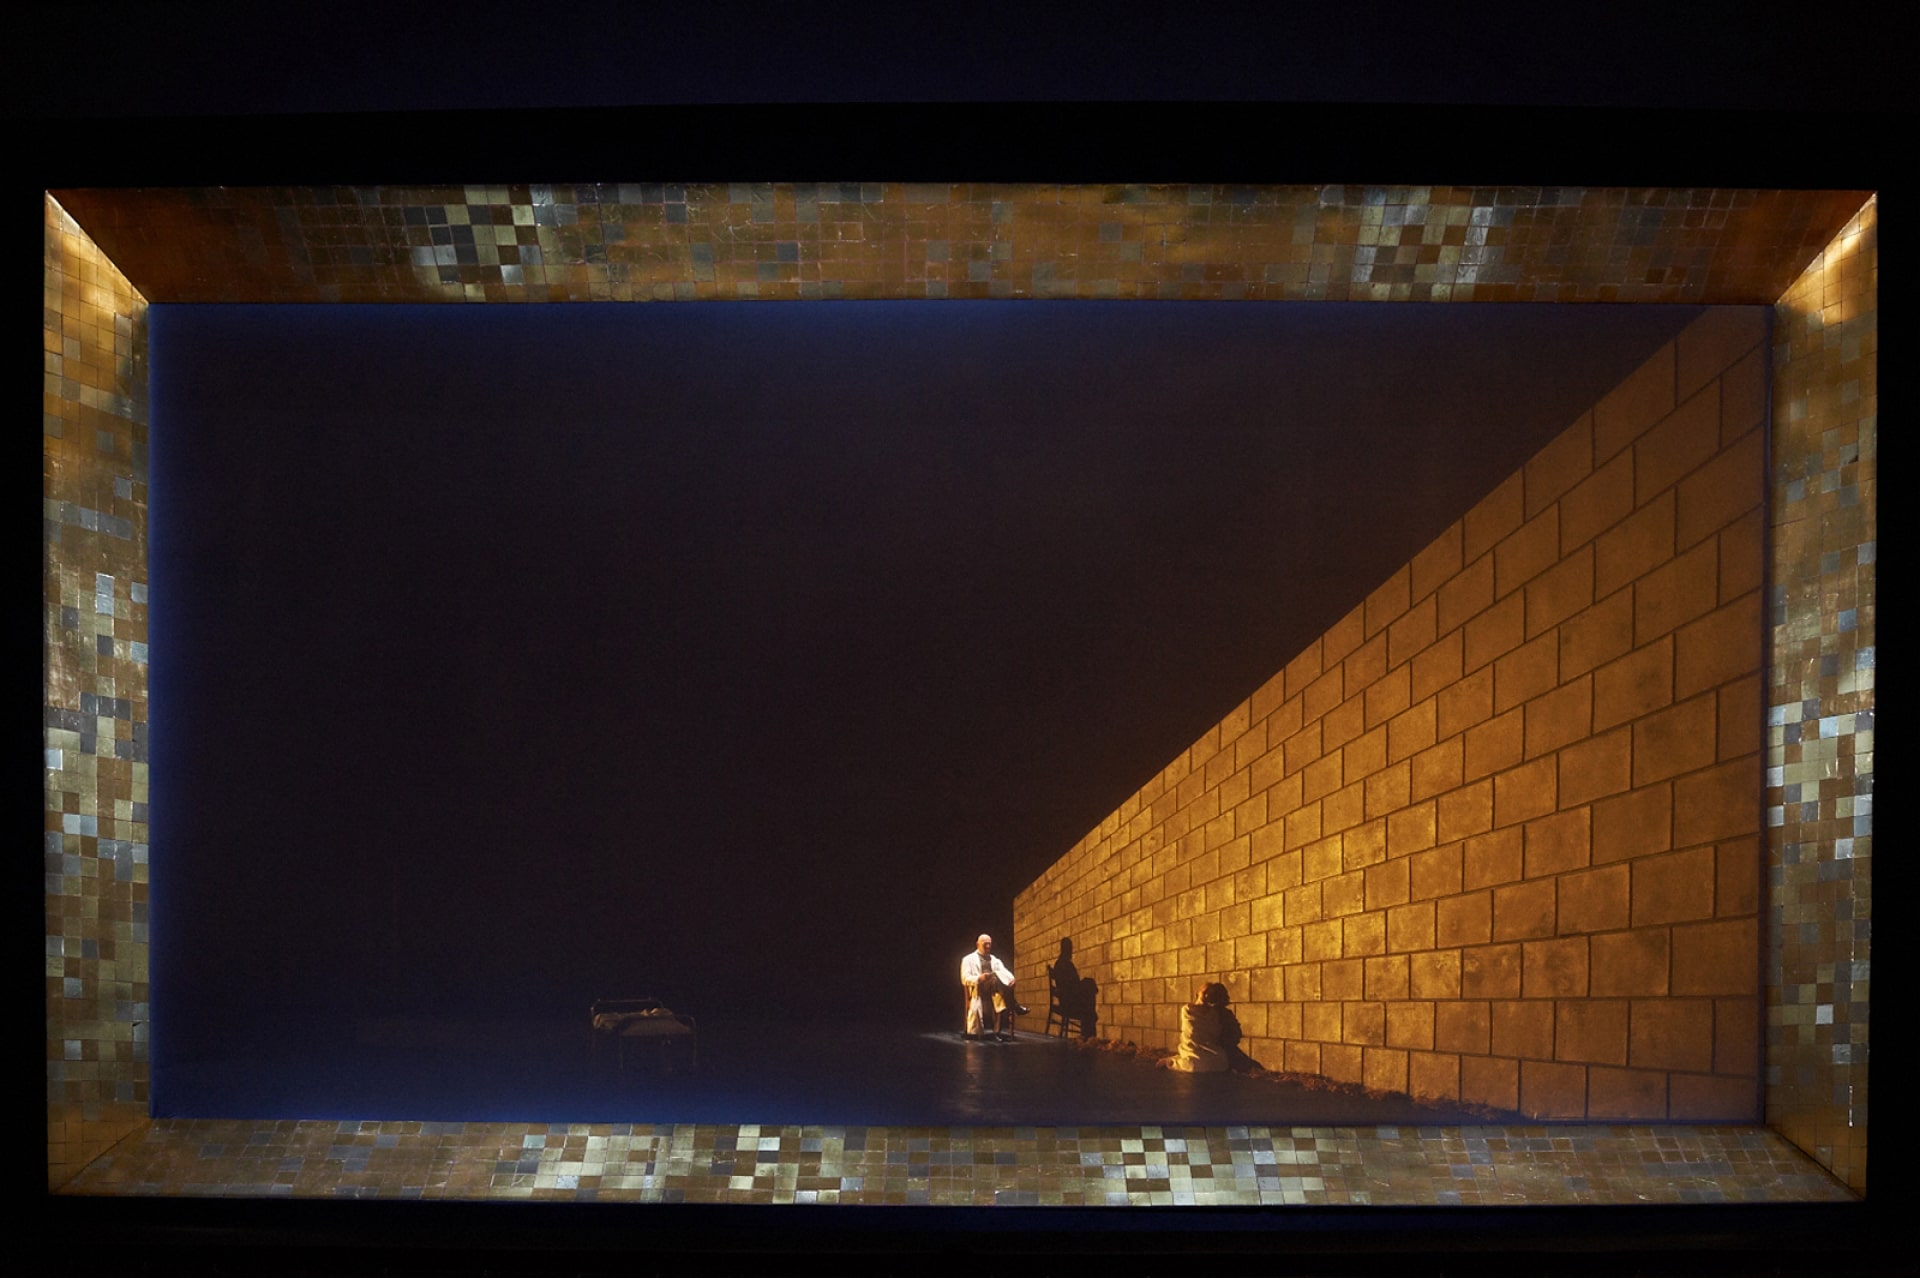 Gold tiles frame warm-lit angled wall with knelling woman in straight-jacket and doctor seated behind.